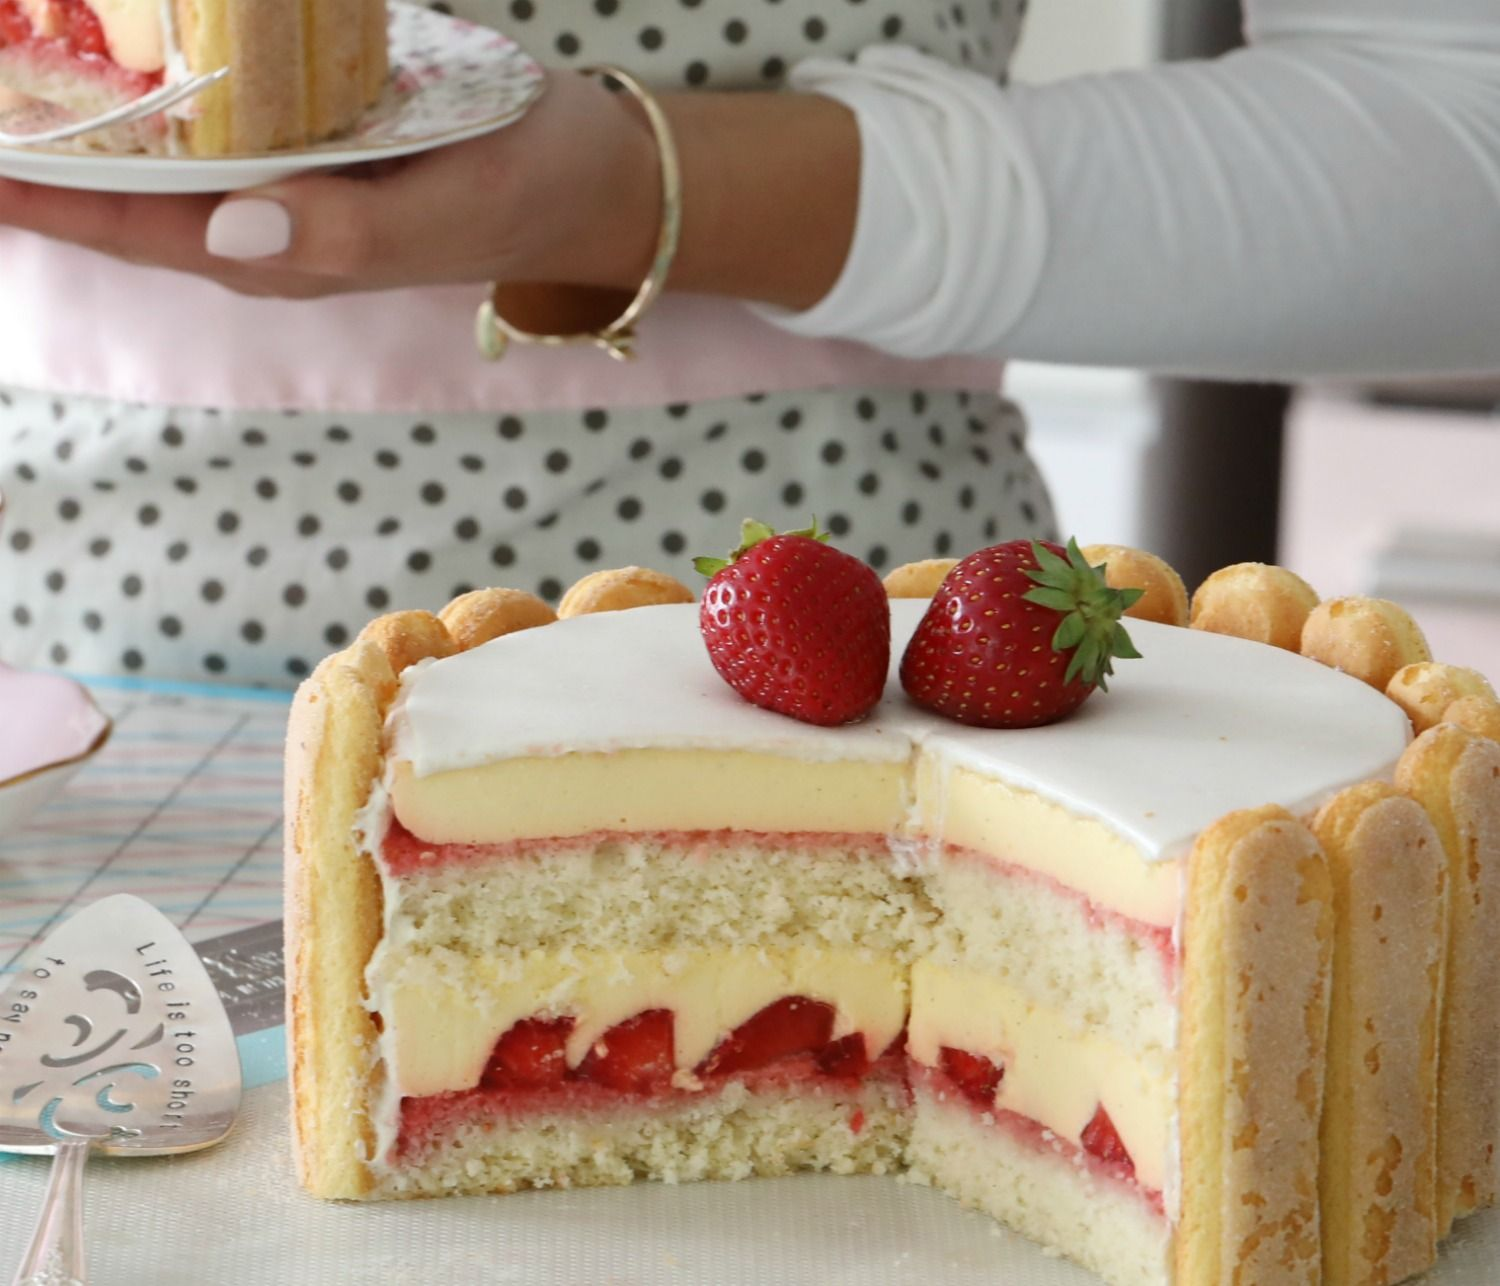 Passionfruit Mousse Cake With Strawberries #celebrationcakes